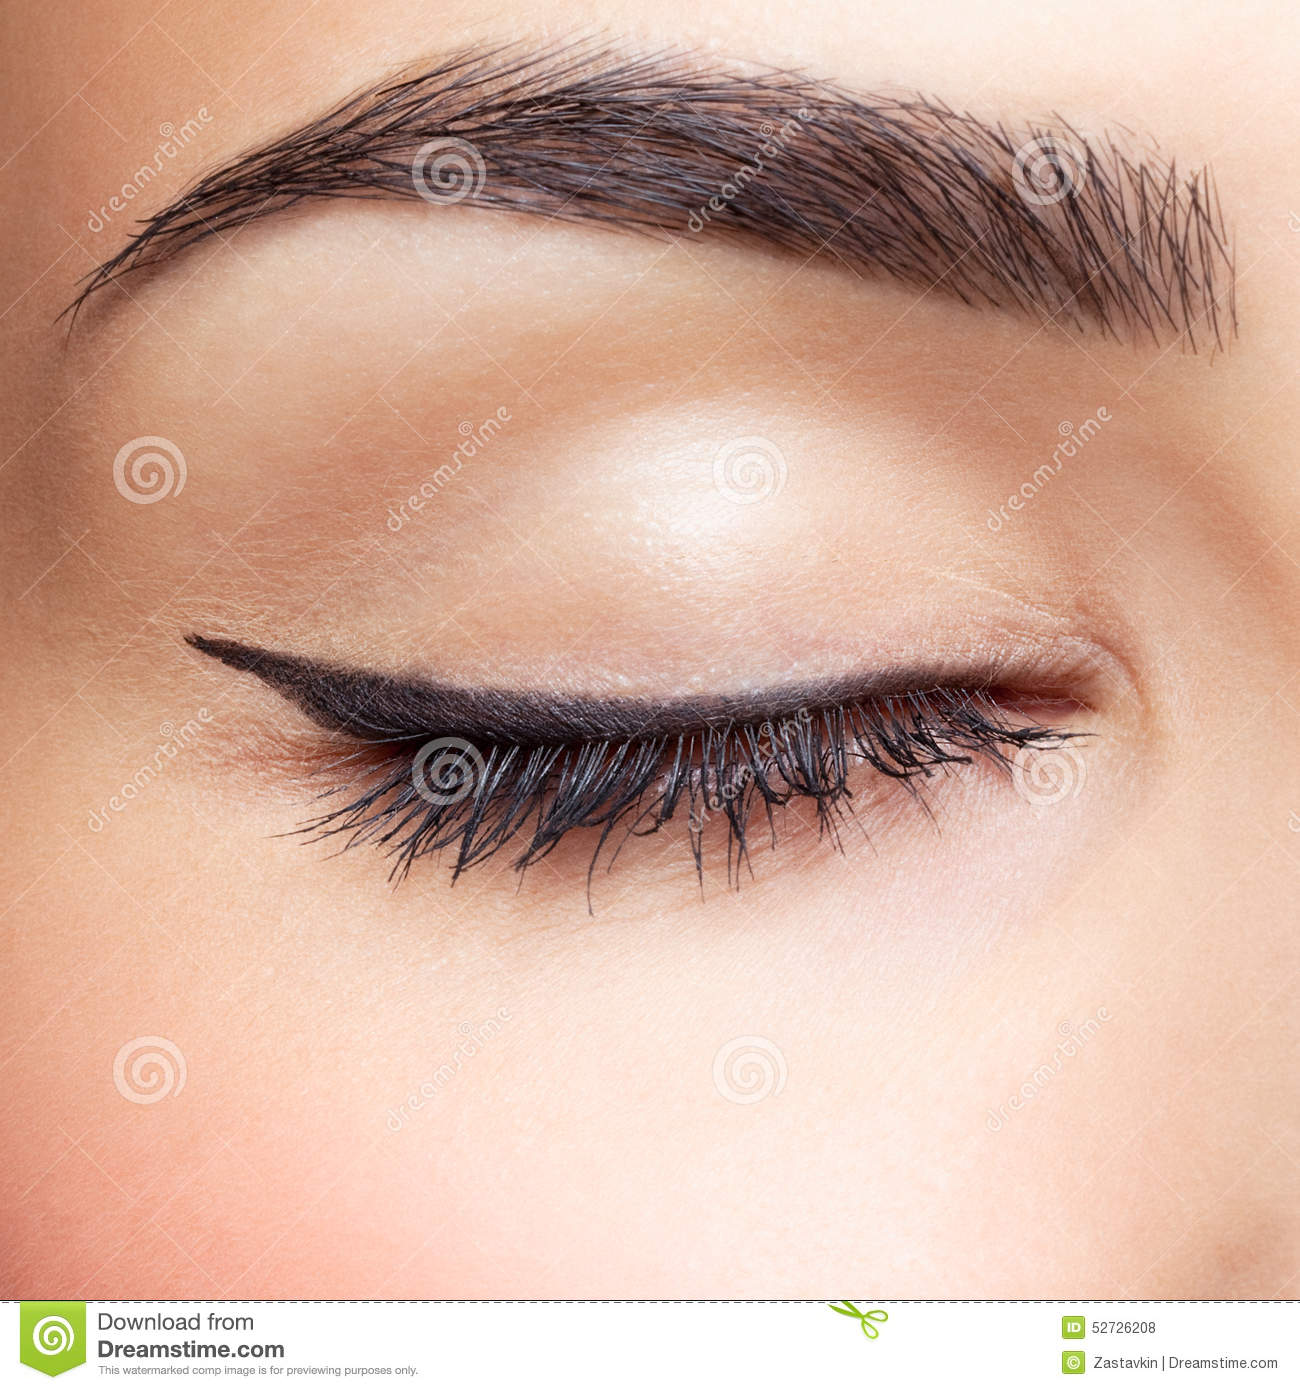 eye zone makeup stock photo image of makeup closed